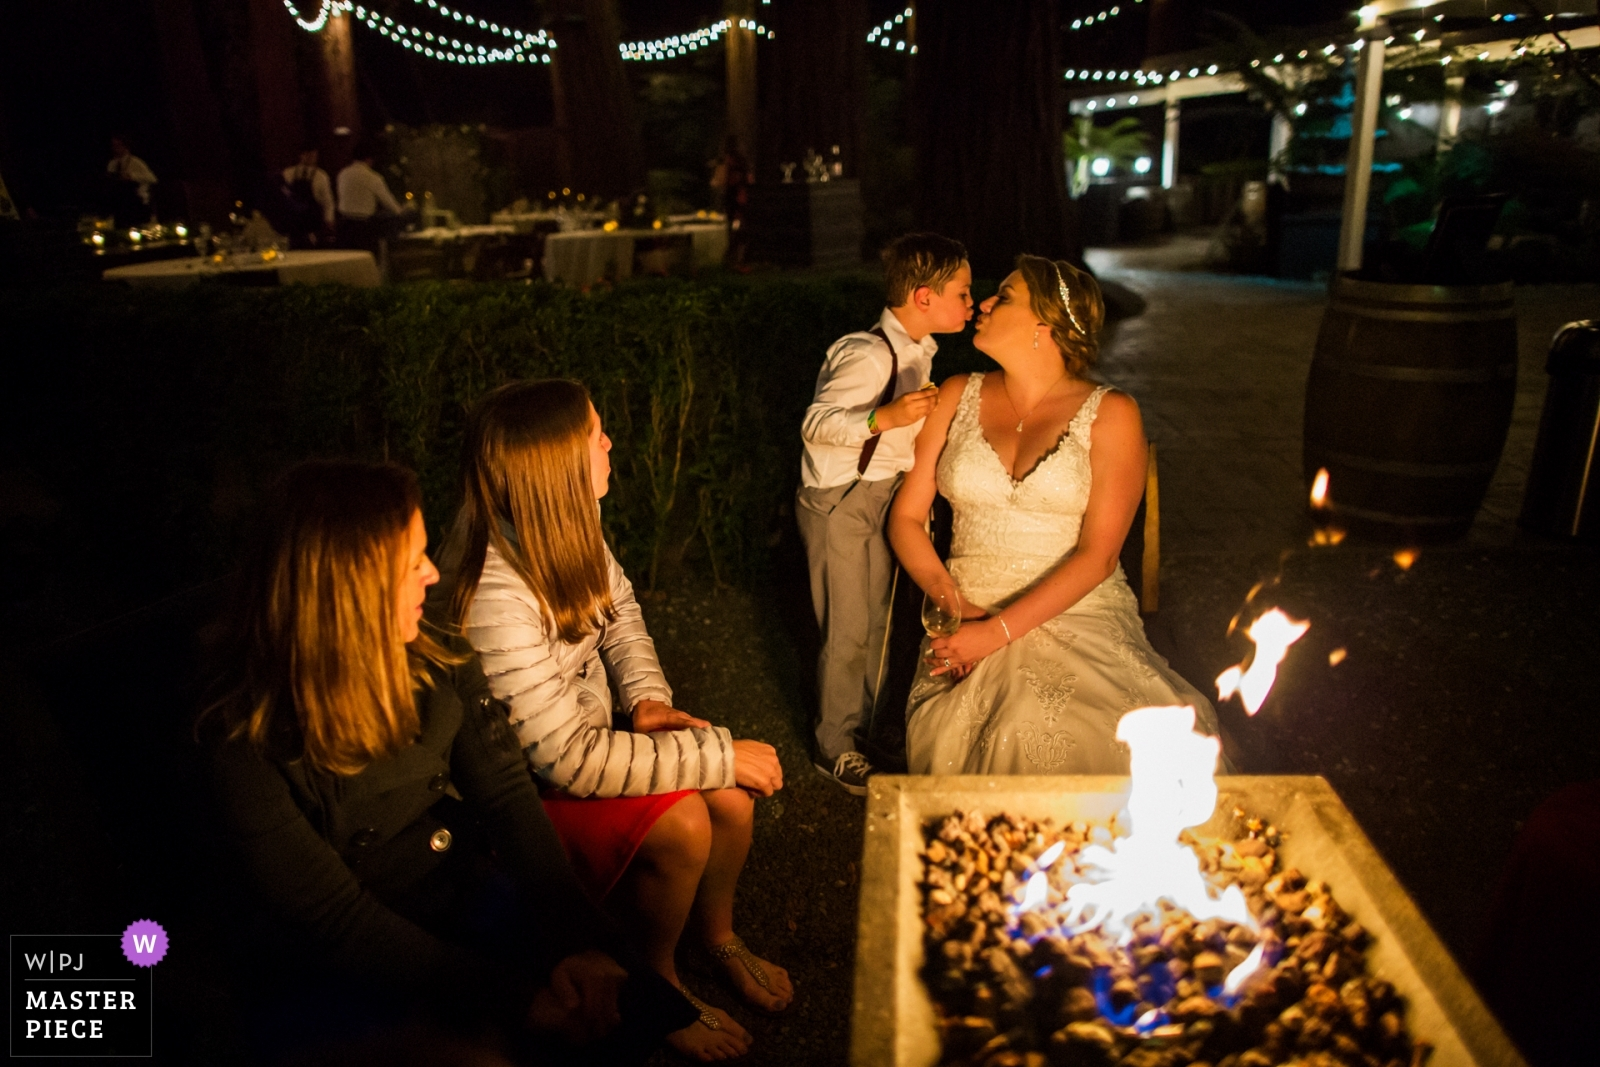 A sweet kiss for the bride - San Francisco, California - Northern Wedding Photography -  | Deer Park Villa, Fairfax